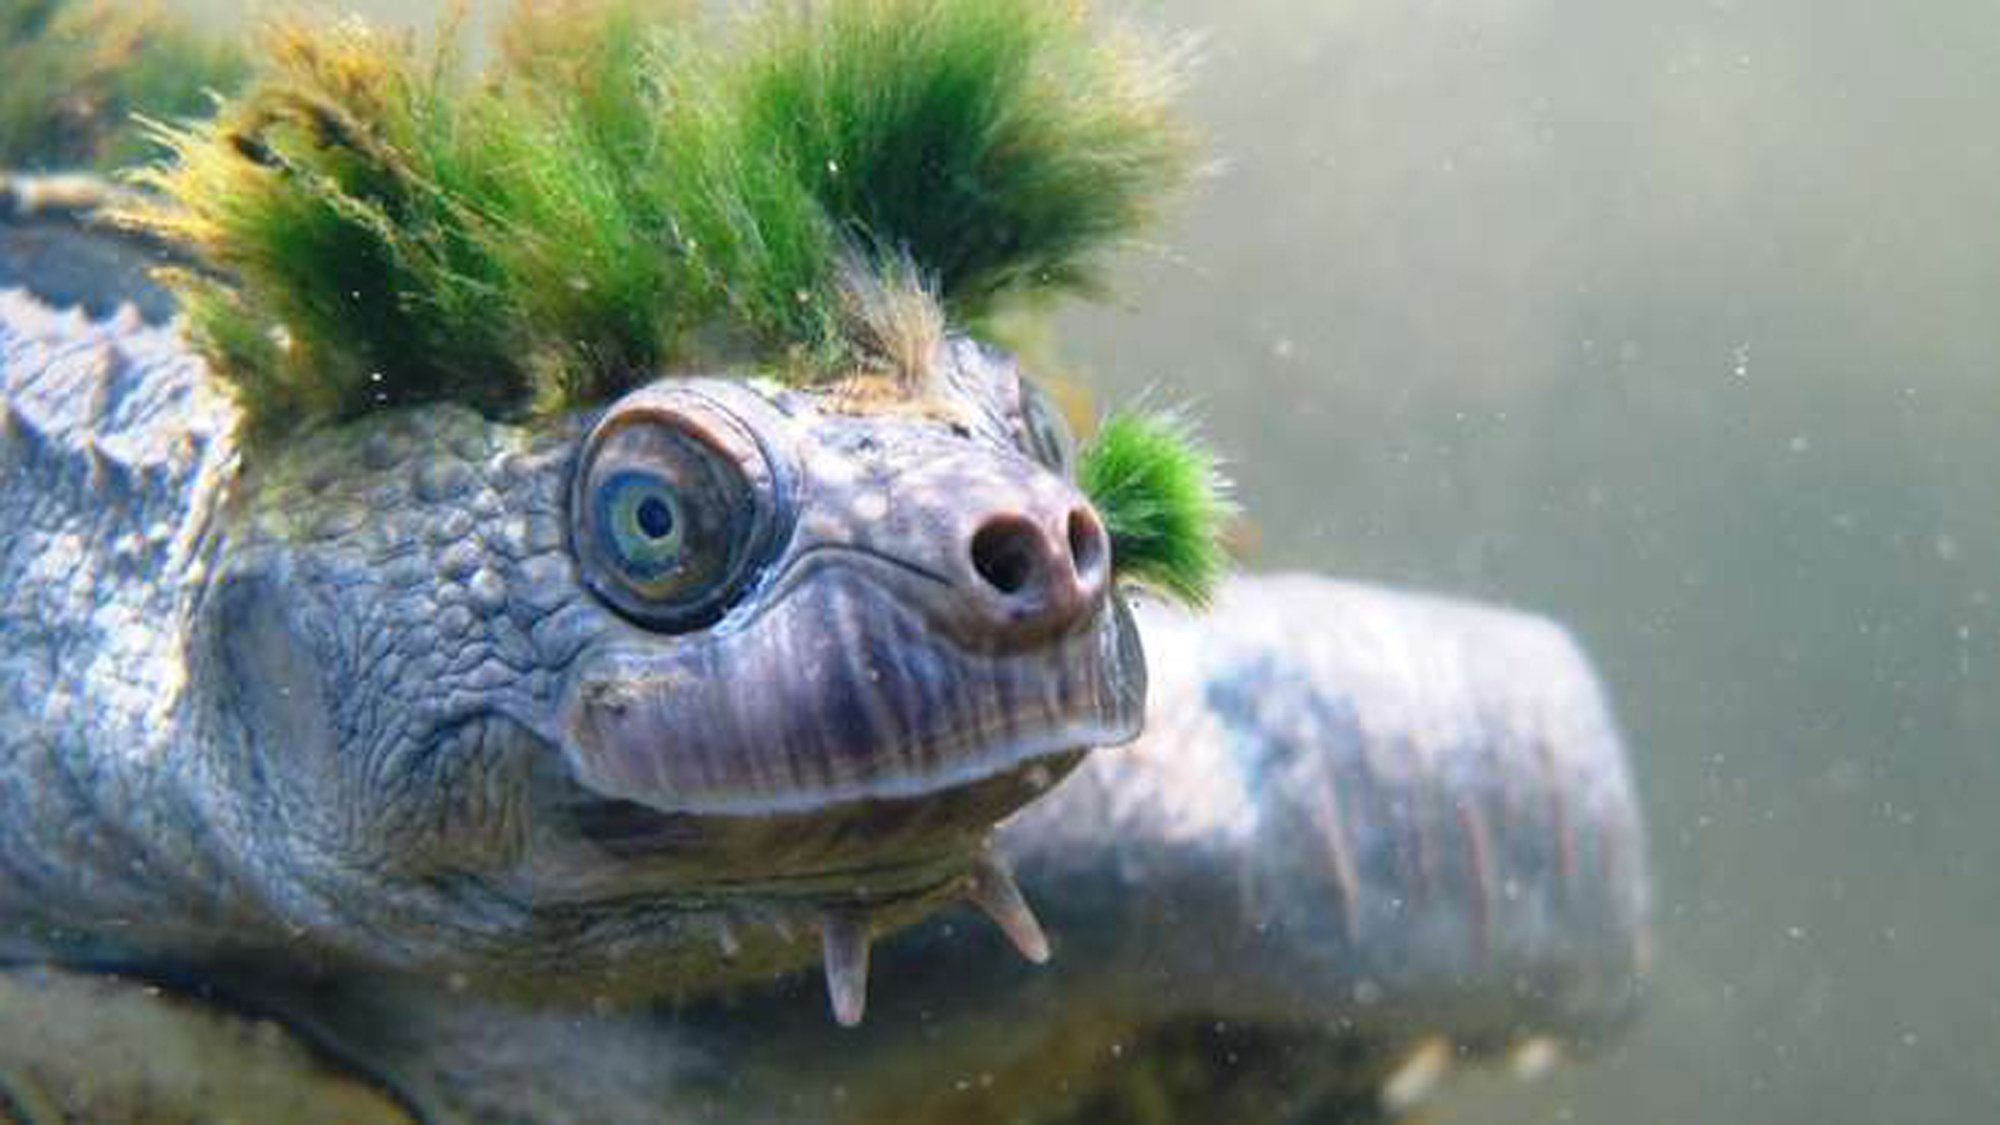 channel 4 dating tortoise for sale